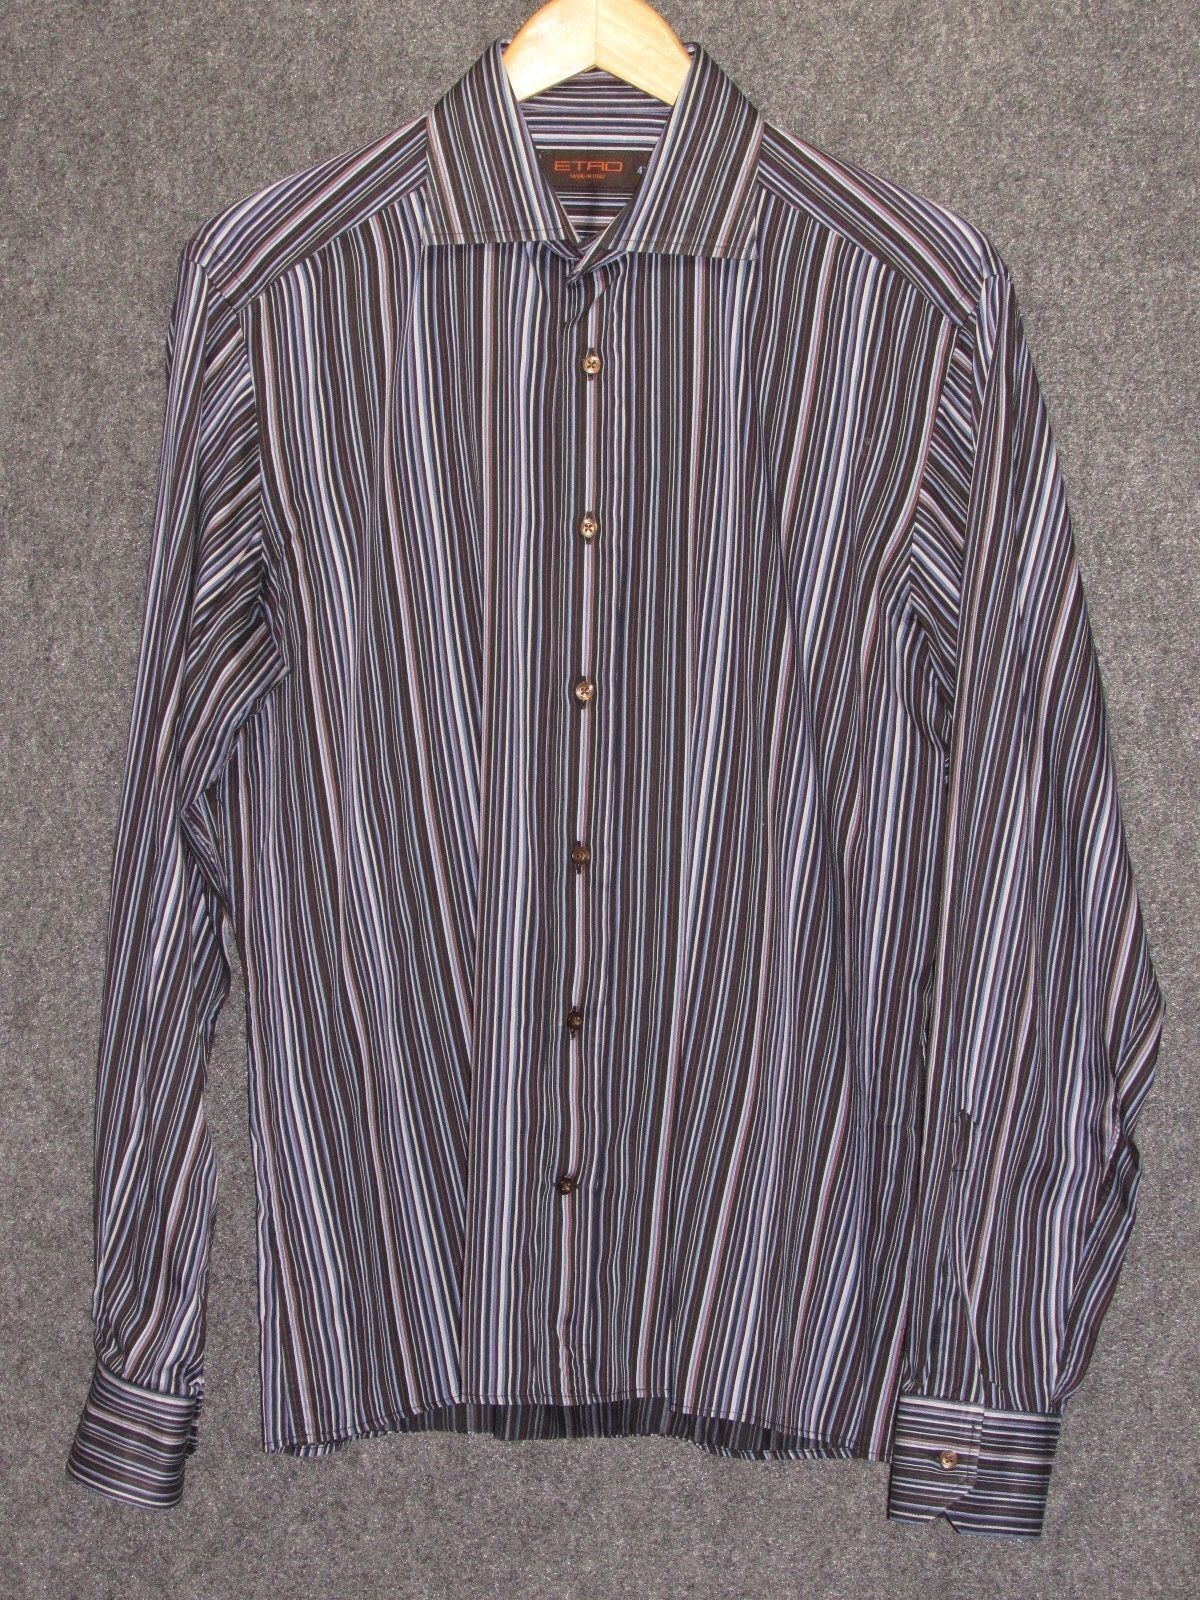 ETRO colorful greenical Striped Pattern Long Sleeves Shirt SZ 41